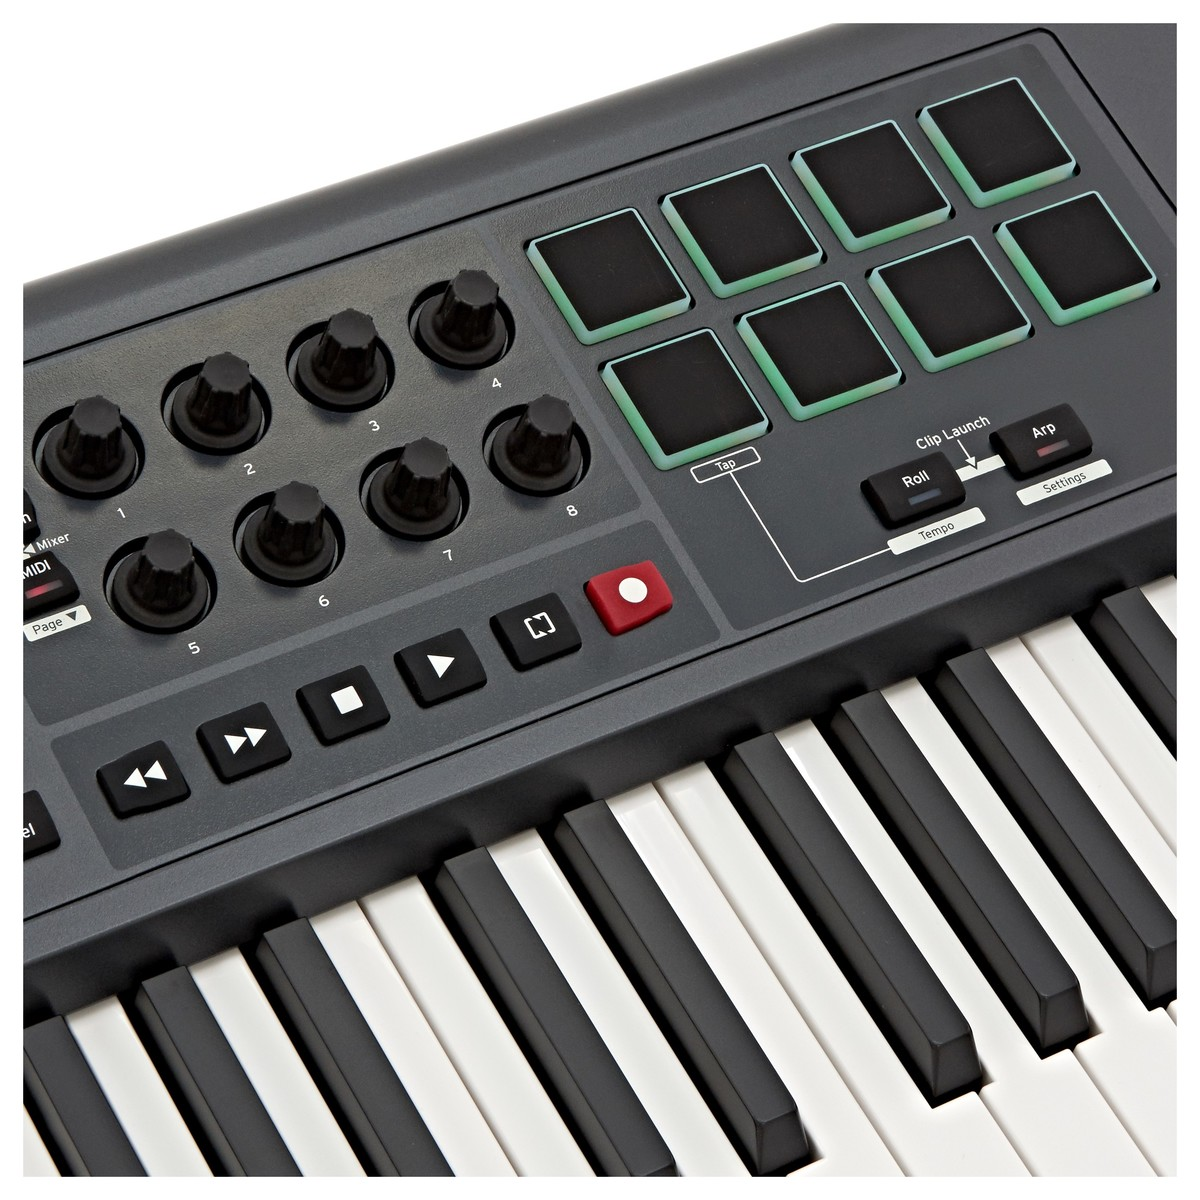 novation impulse 61 key usb midi controller keyboard at gear4music. Black Bedroom Furniture Sets. Home Design Ideas